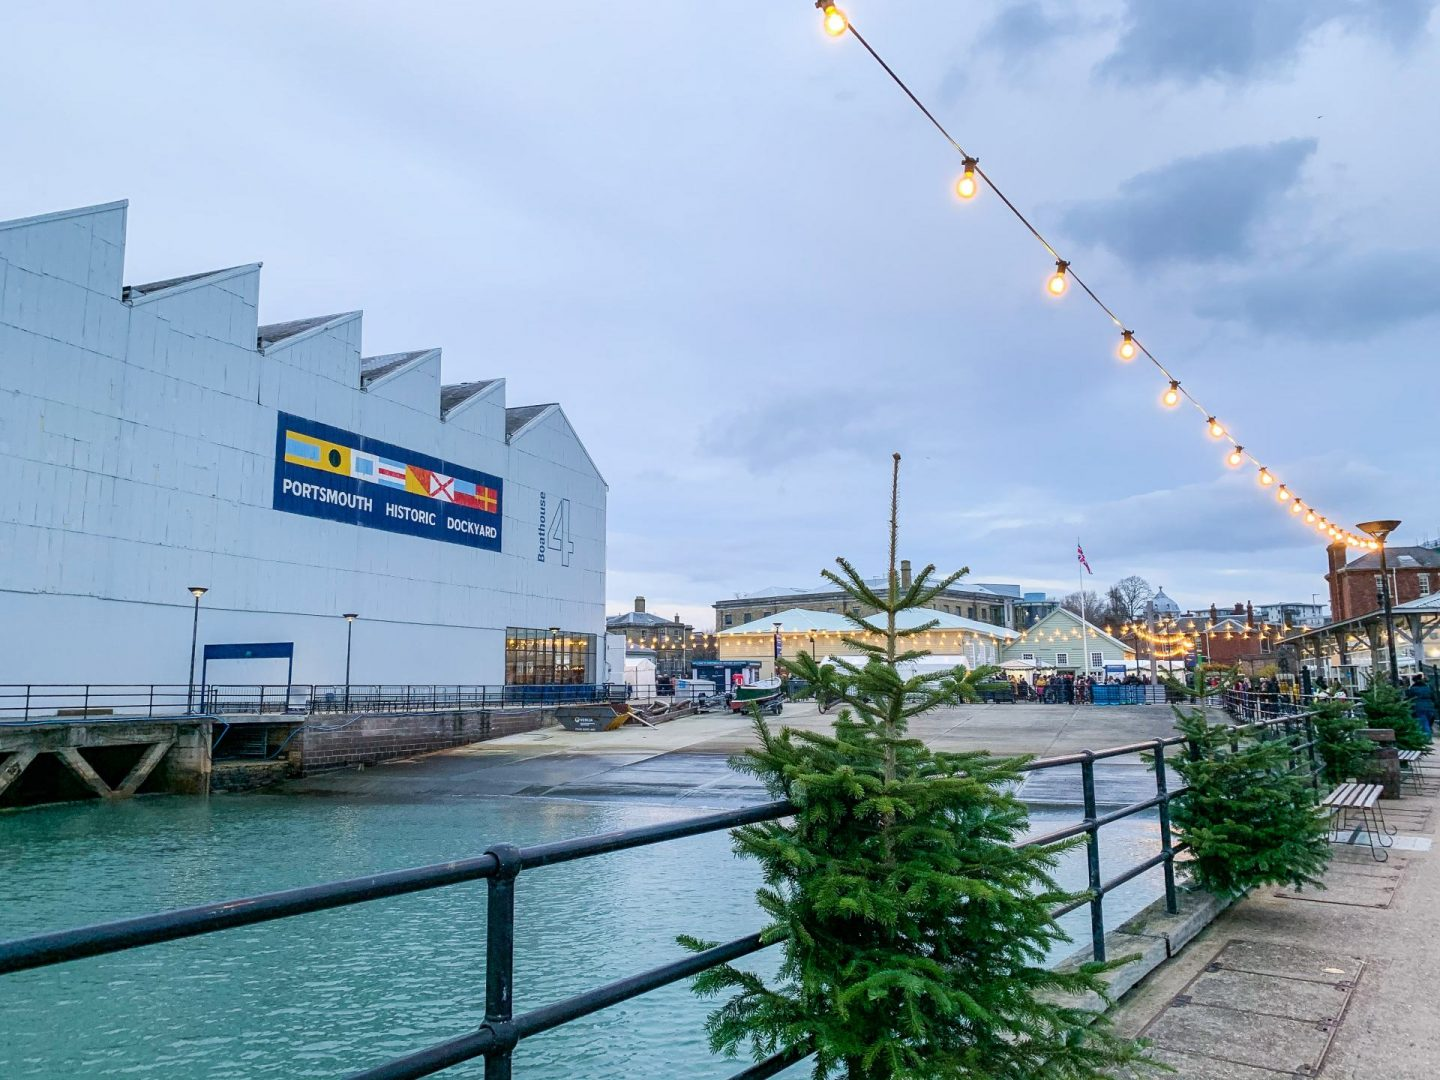 Victorian Festival of Christmas at Portsmouth Historic Dockyard